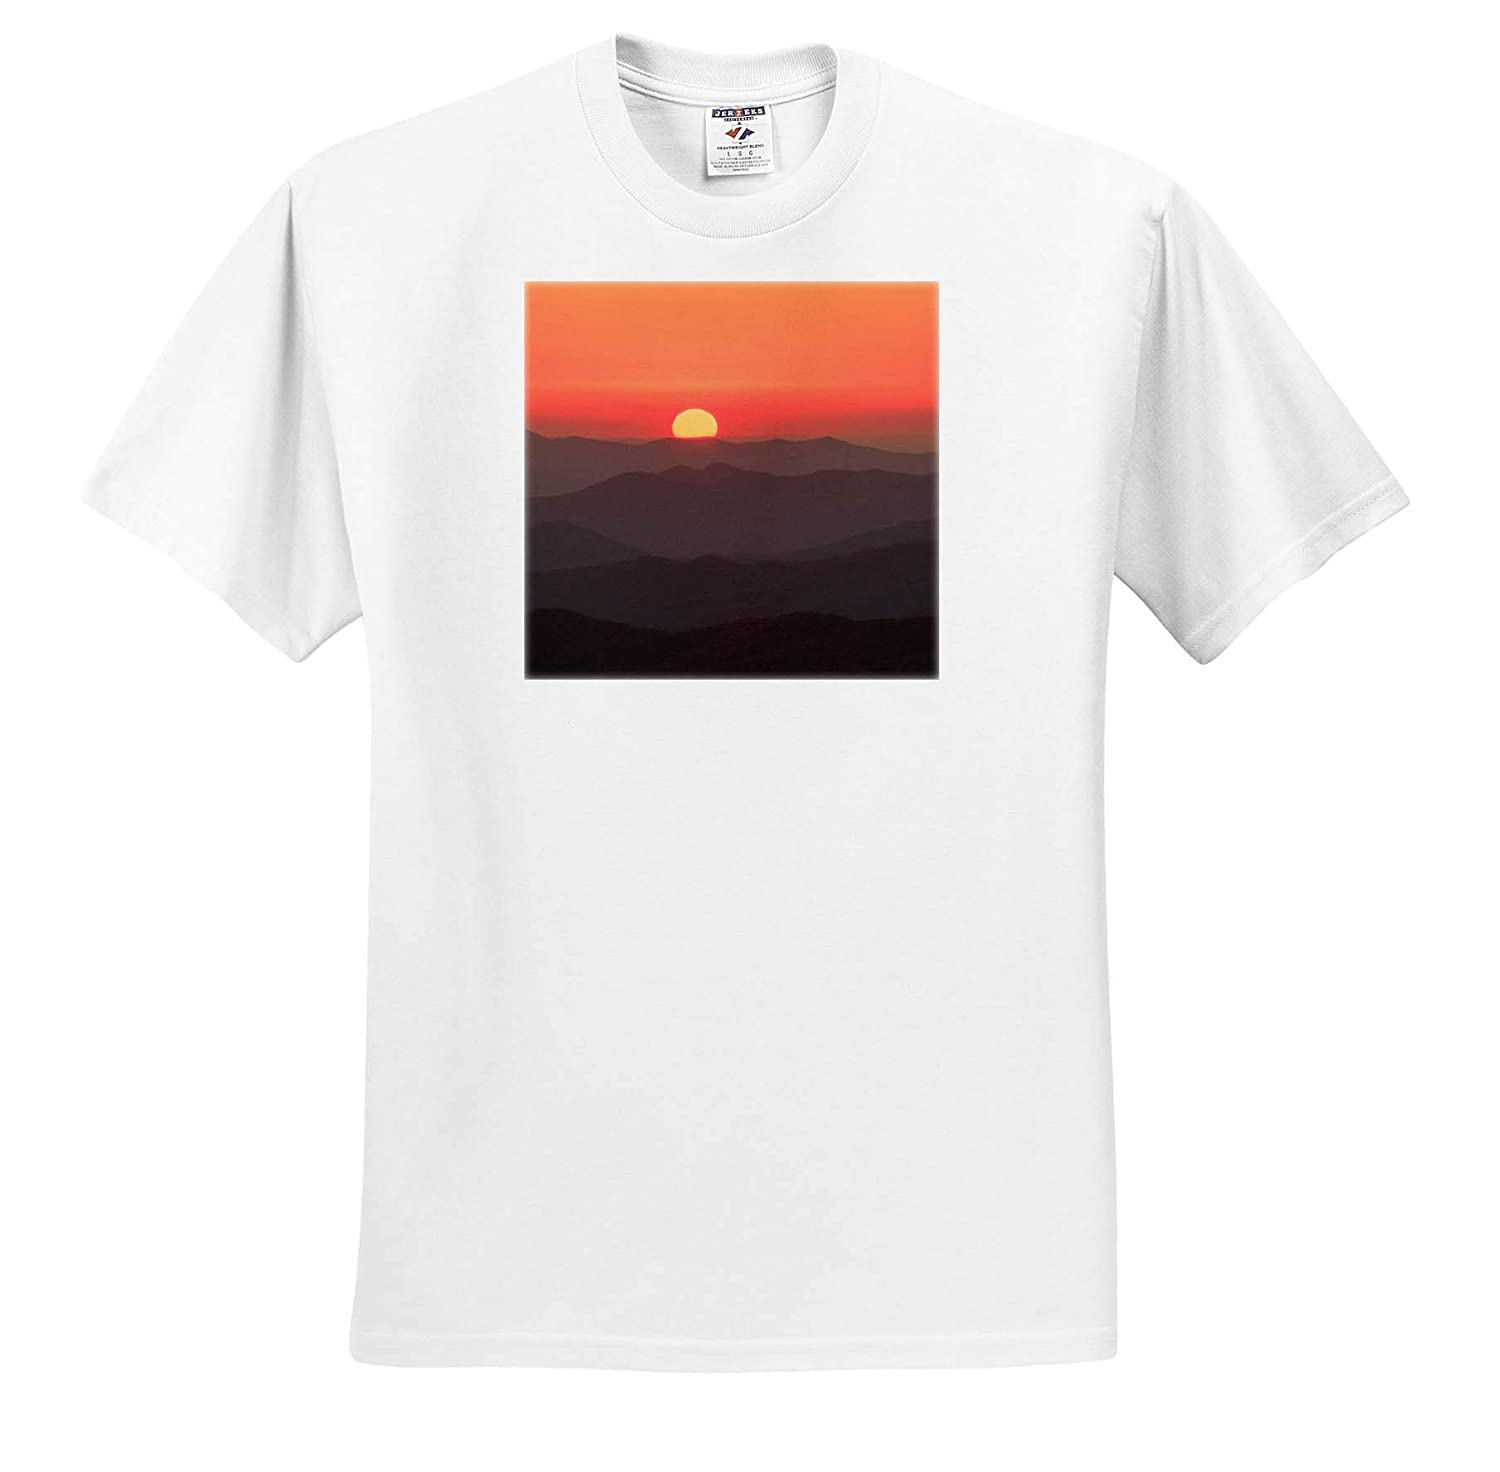 USA 3dRose Danita Delimont Tennessee Sunset Great Smoky Mountain National Park Sunsets ts/_315024 - Adult T-Shirt XL